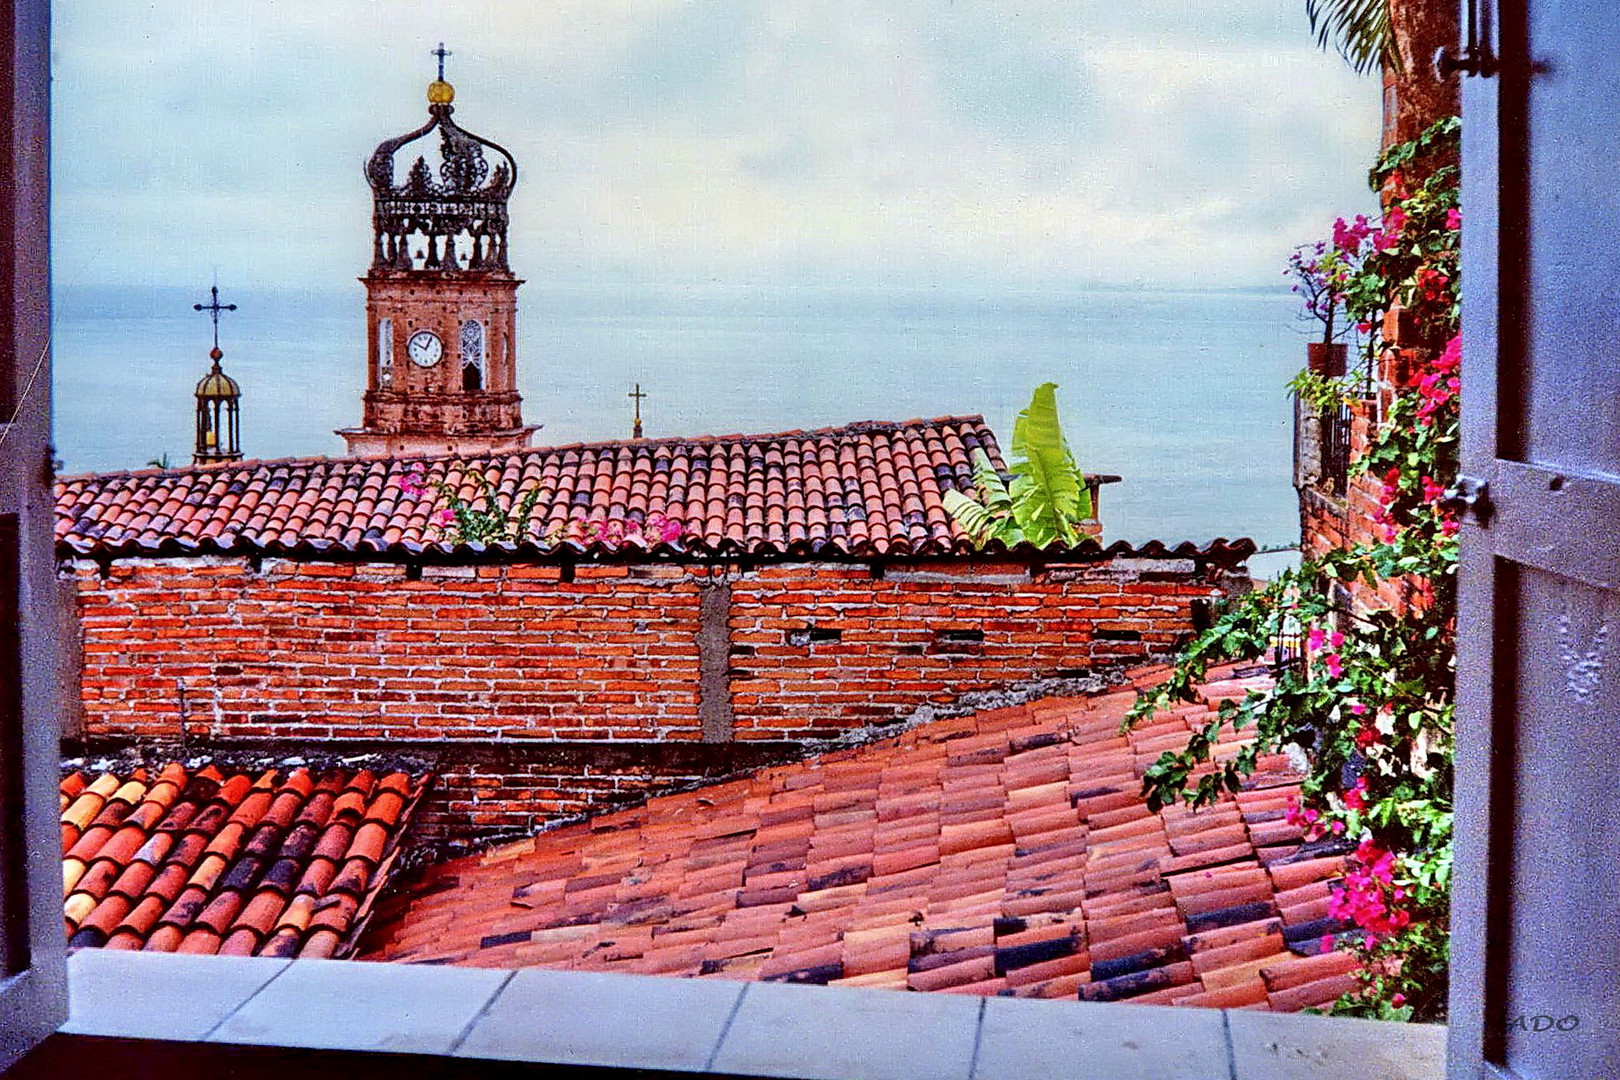 Across the Red Tiled Roofs